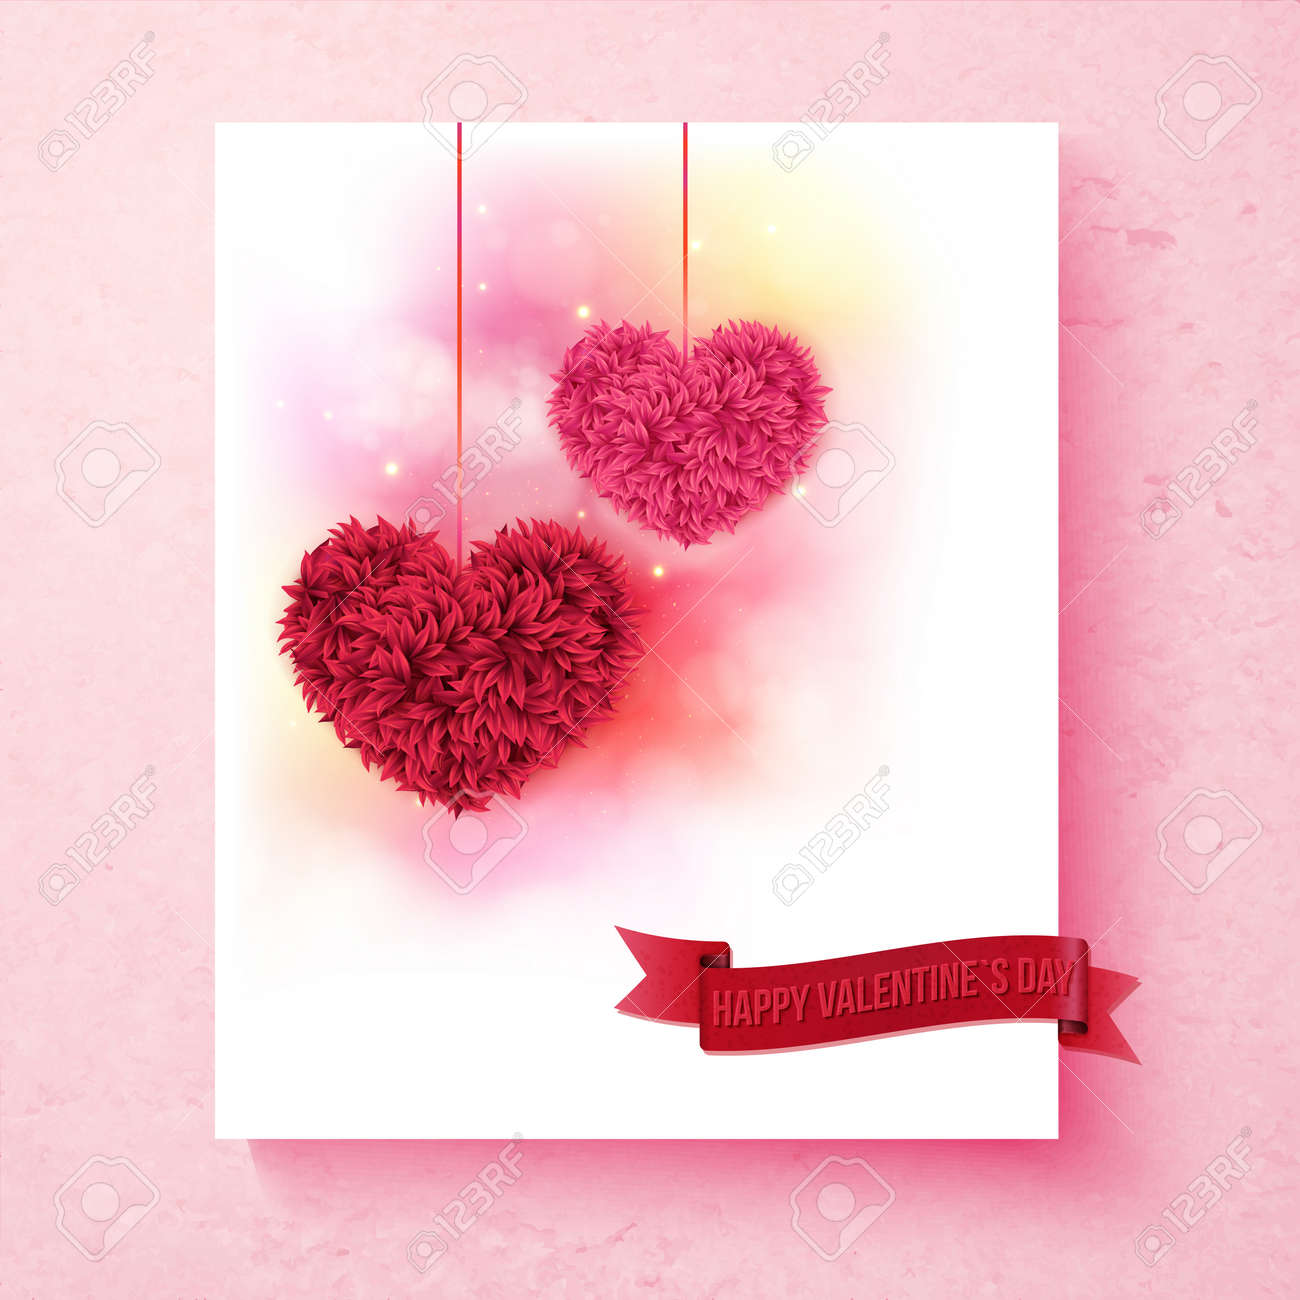 Sentimental Valentine Card Design With Colorful Pink And Red – How to Design Valentine Card